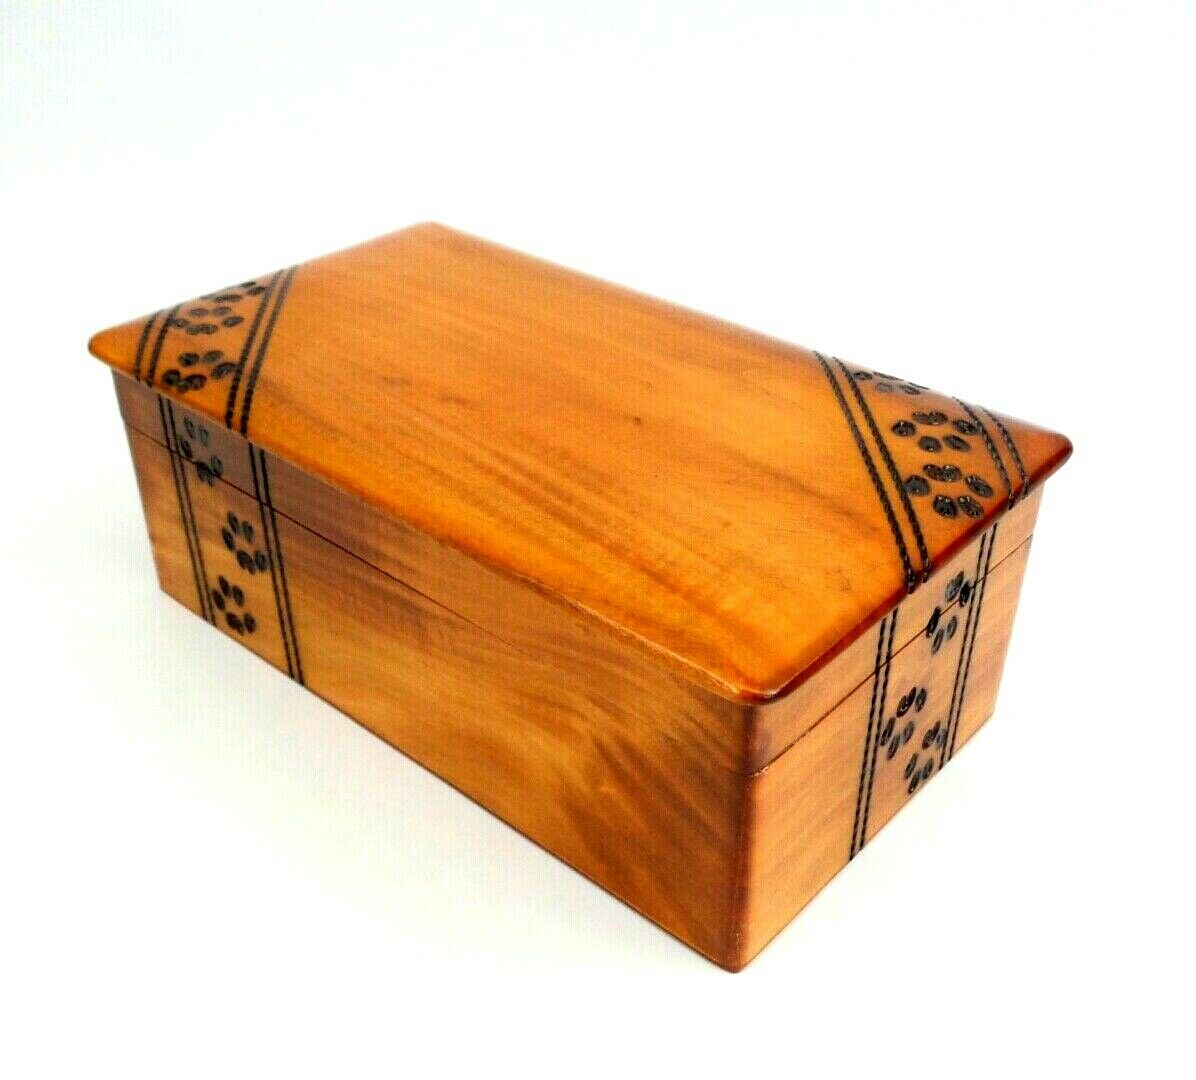 Pet Cremation Urn Large Paw Print Wood Box Cat Dog Wood Chest Ashes Memorial